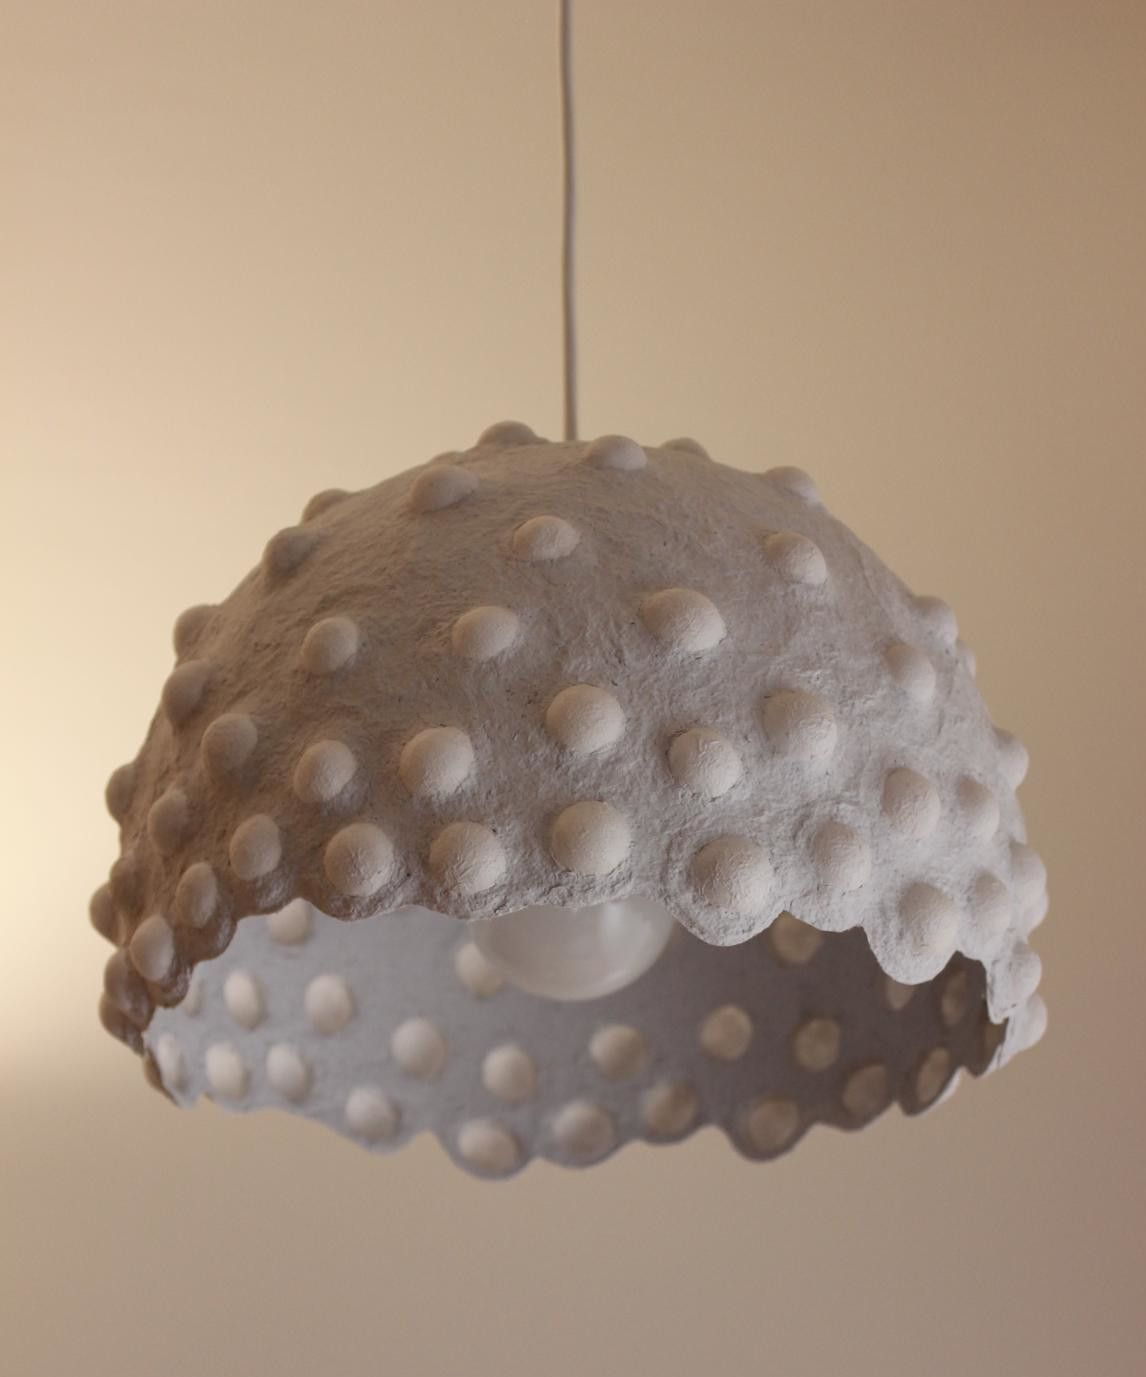 Paper Mache Pendant Light Recycled Paper Lampshade Paper Pulp Light Translucent Paper Light Hanging Lamp 30 Cm 12 Inches Diameter Paper Lampshade Pendant Light Set Plug In Pendant Light